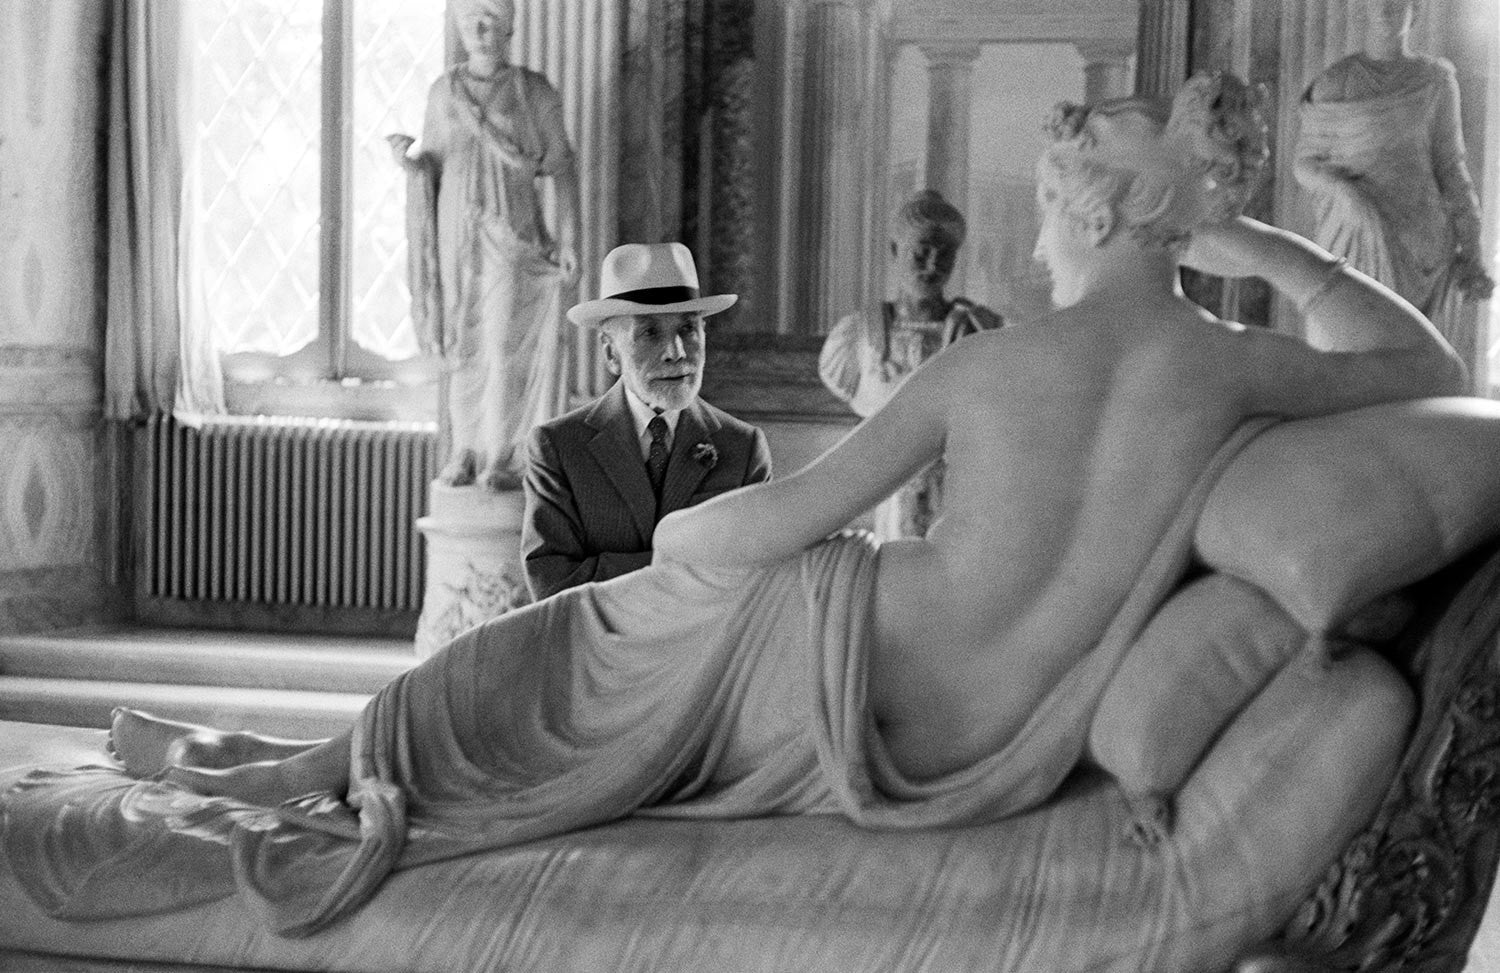 Bernhard Berenson at Ninety, visiting the Borghese Gallery, 1954.